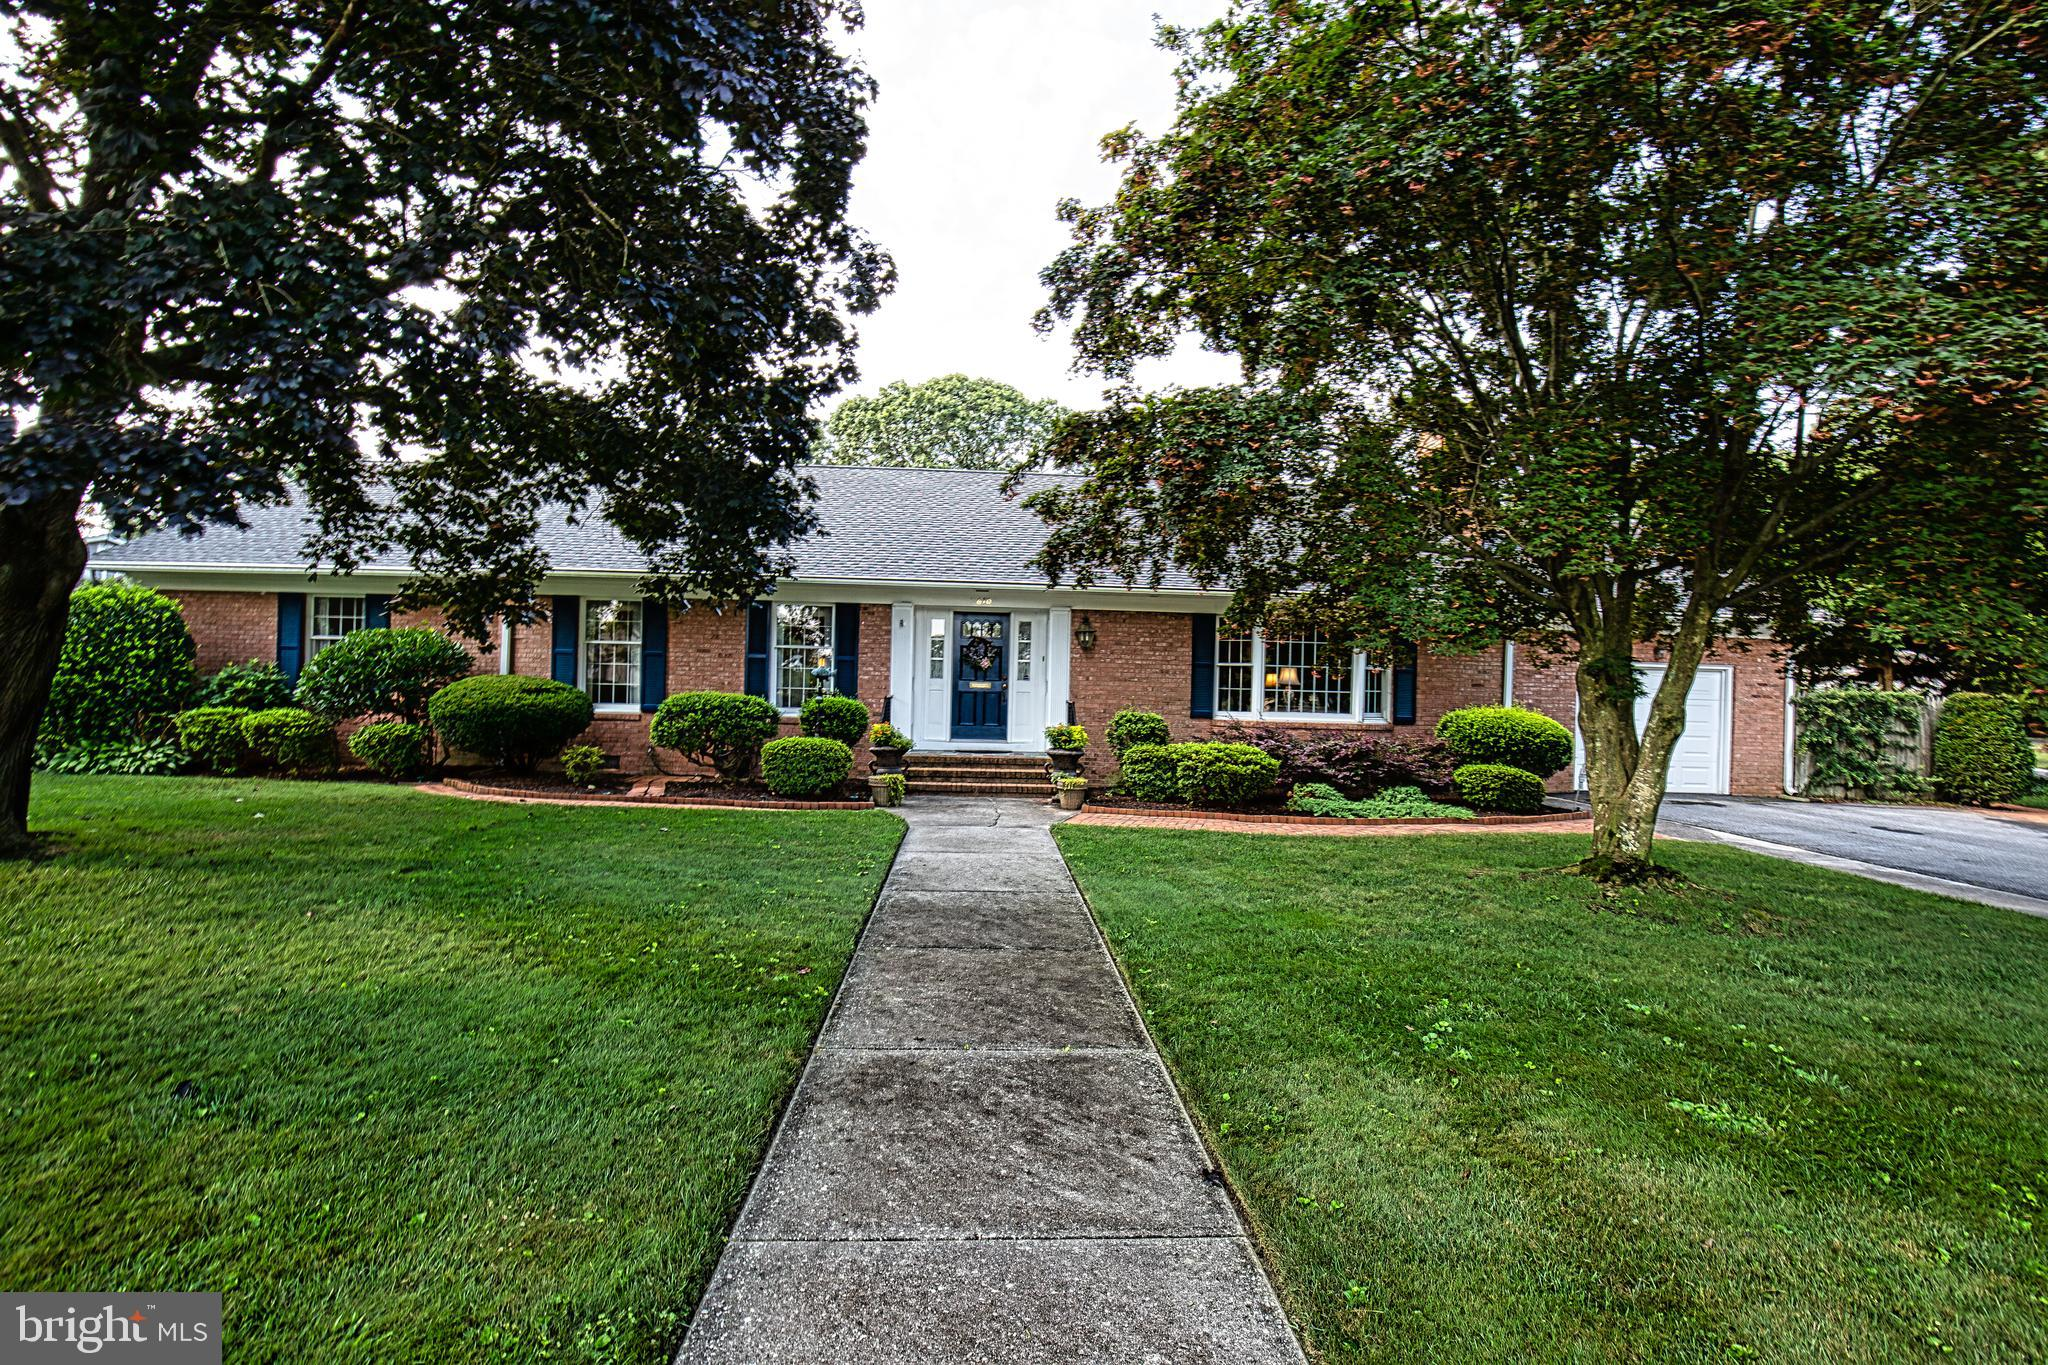 Gracious living best describes this spacious , all brick rancher with attached garage. Generous room